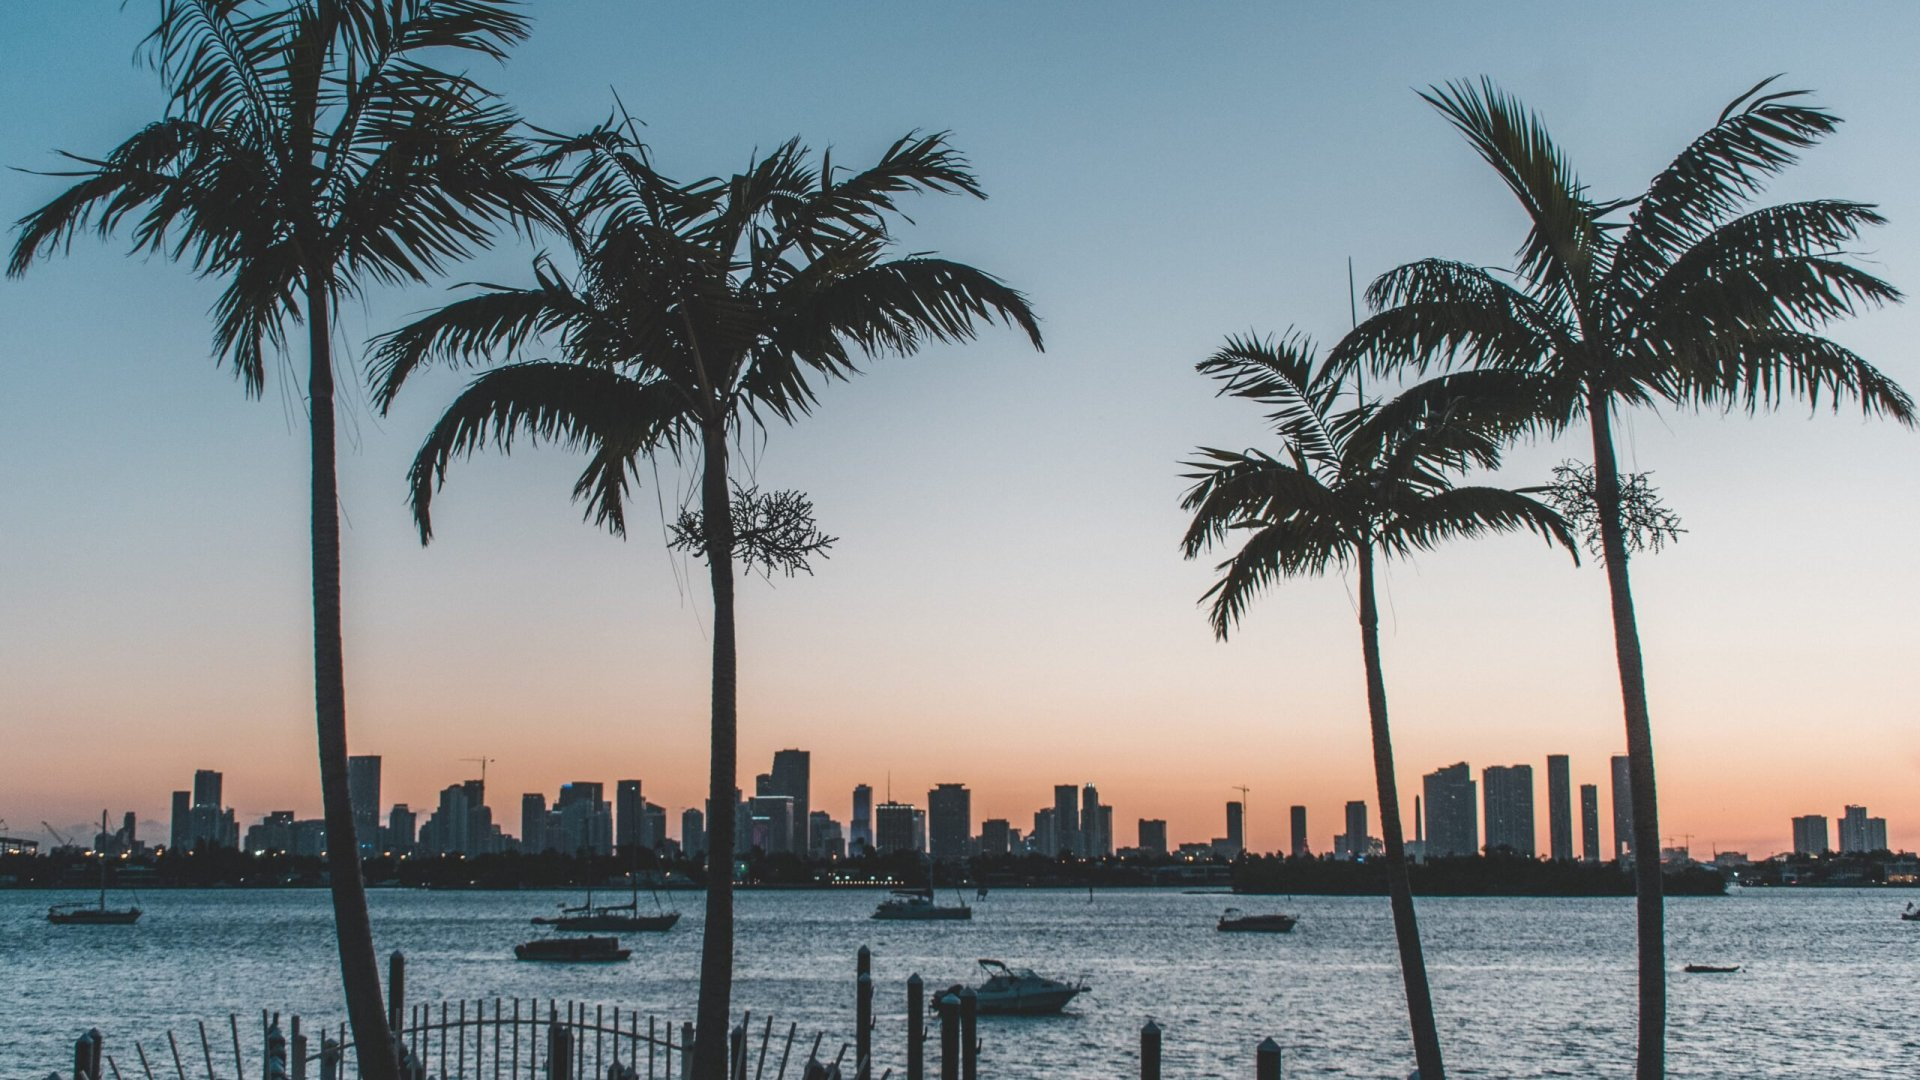 Florida Commercial Real Estate News Roundup 2020 – MMG Equity Partners Florida Retail Experts